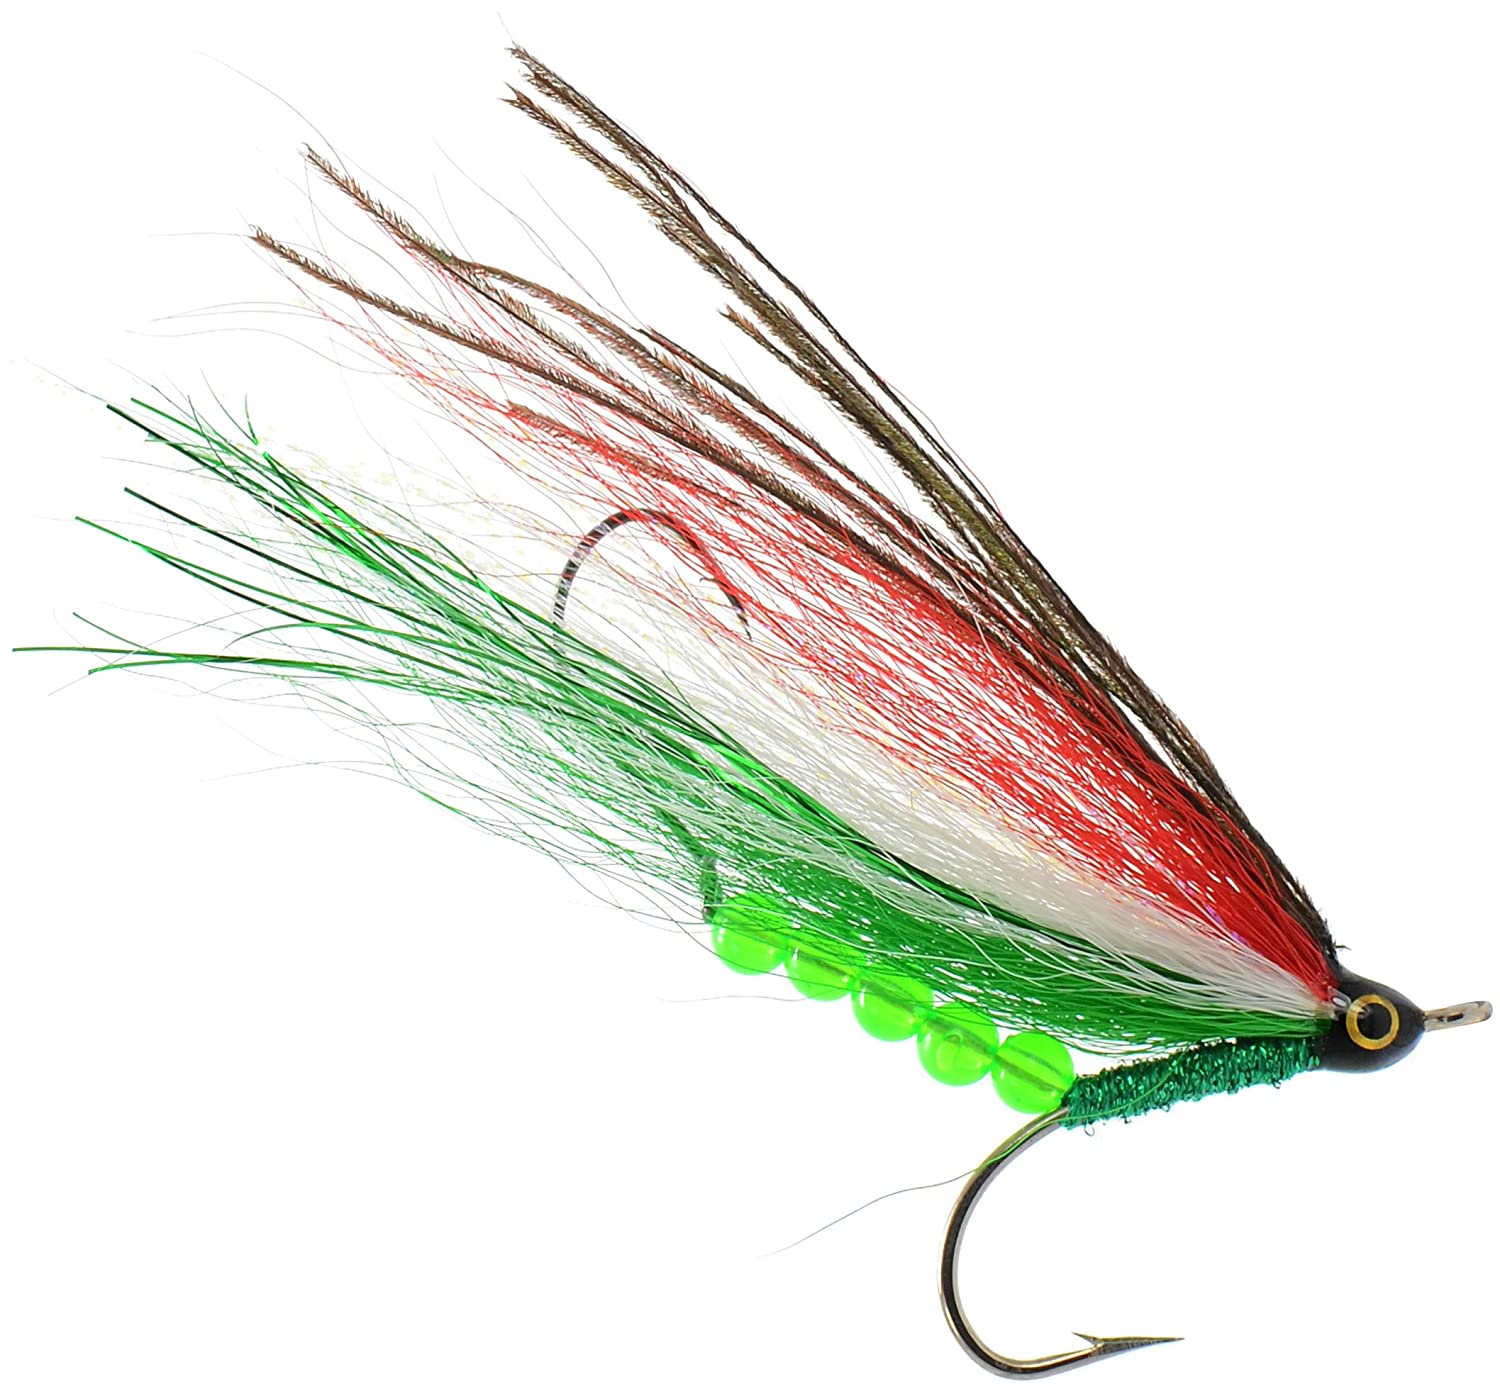 Pike Bass Perch Walleye Salmon Trout Dorado Tarpin Bonefish PEETZ Jack of Diamonds 4-Inch Pro Grade McFly Fly Fishing Lure Deceiver Streamer Bucktail Clouser Wet Freshwater Saltwater